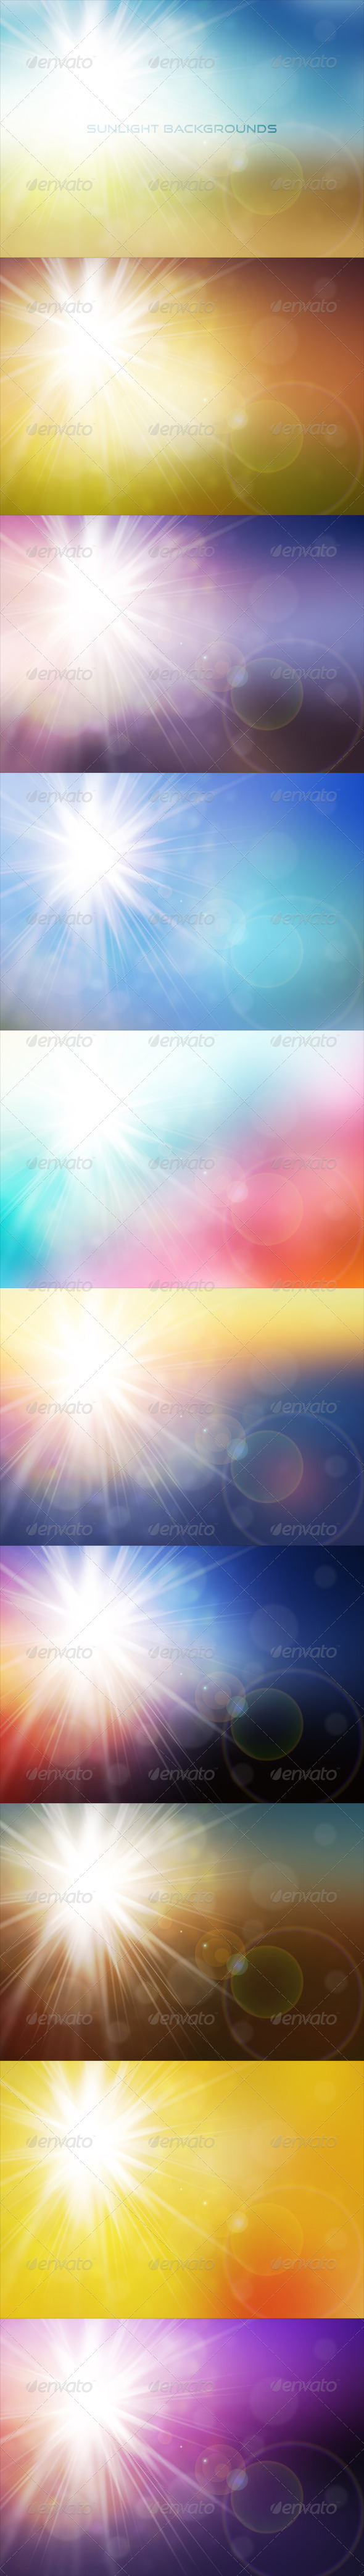 GraphicRiver Colorful Sunlight Backgrounds 7575563